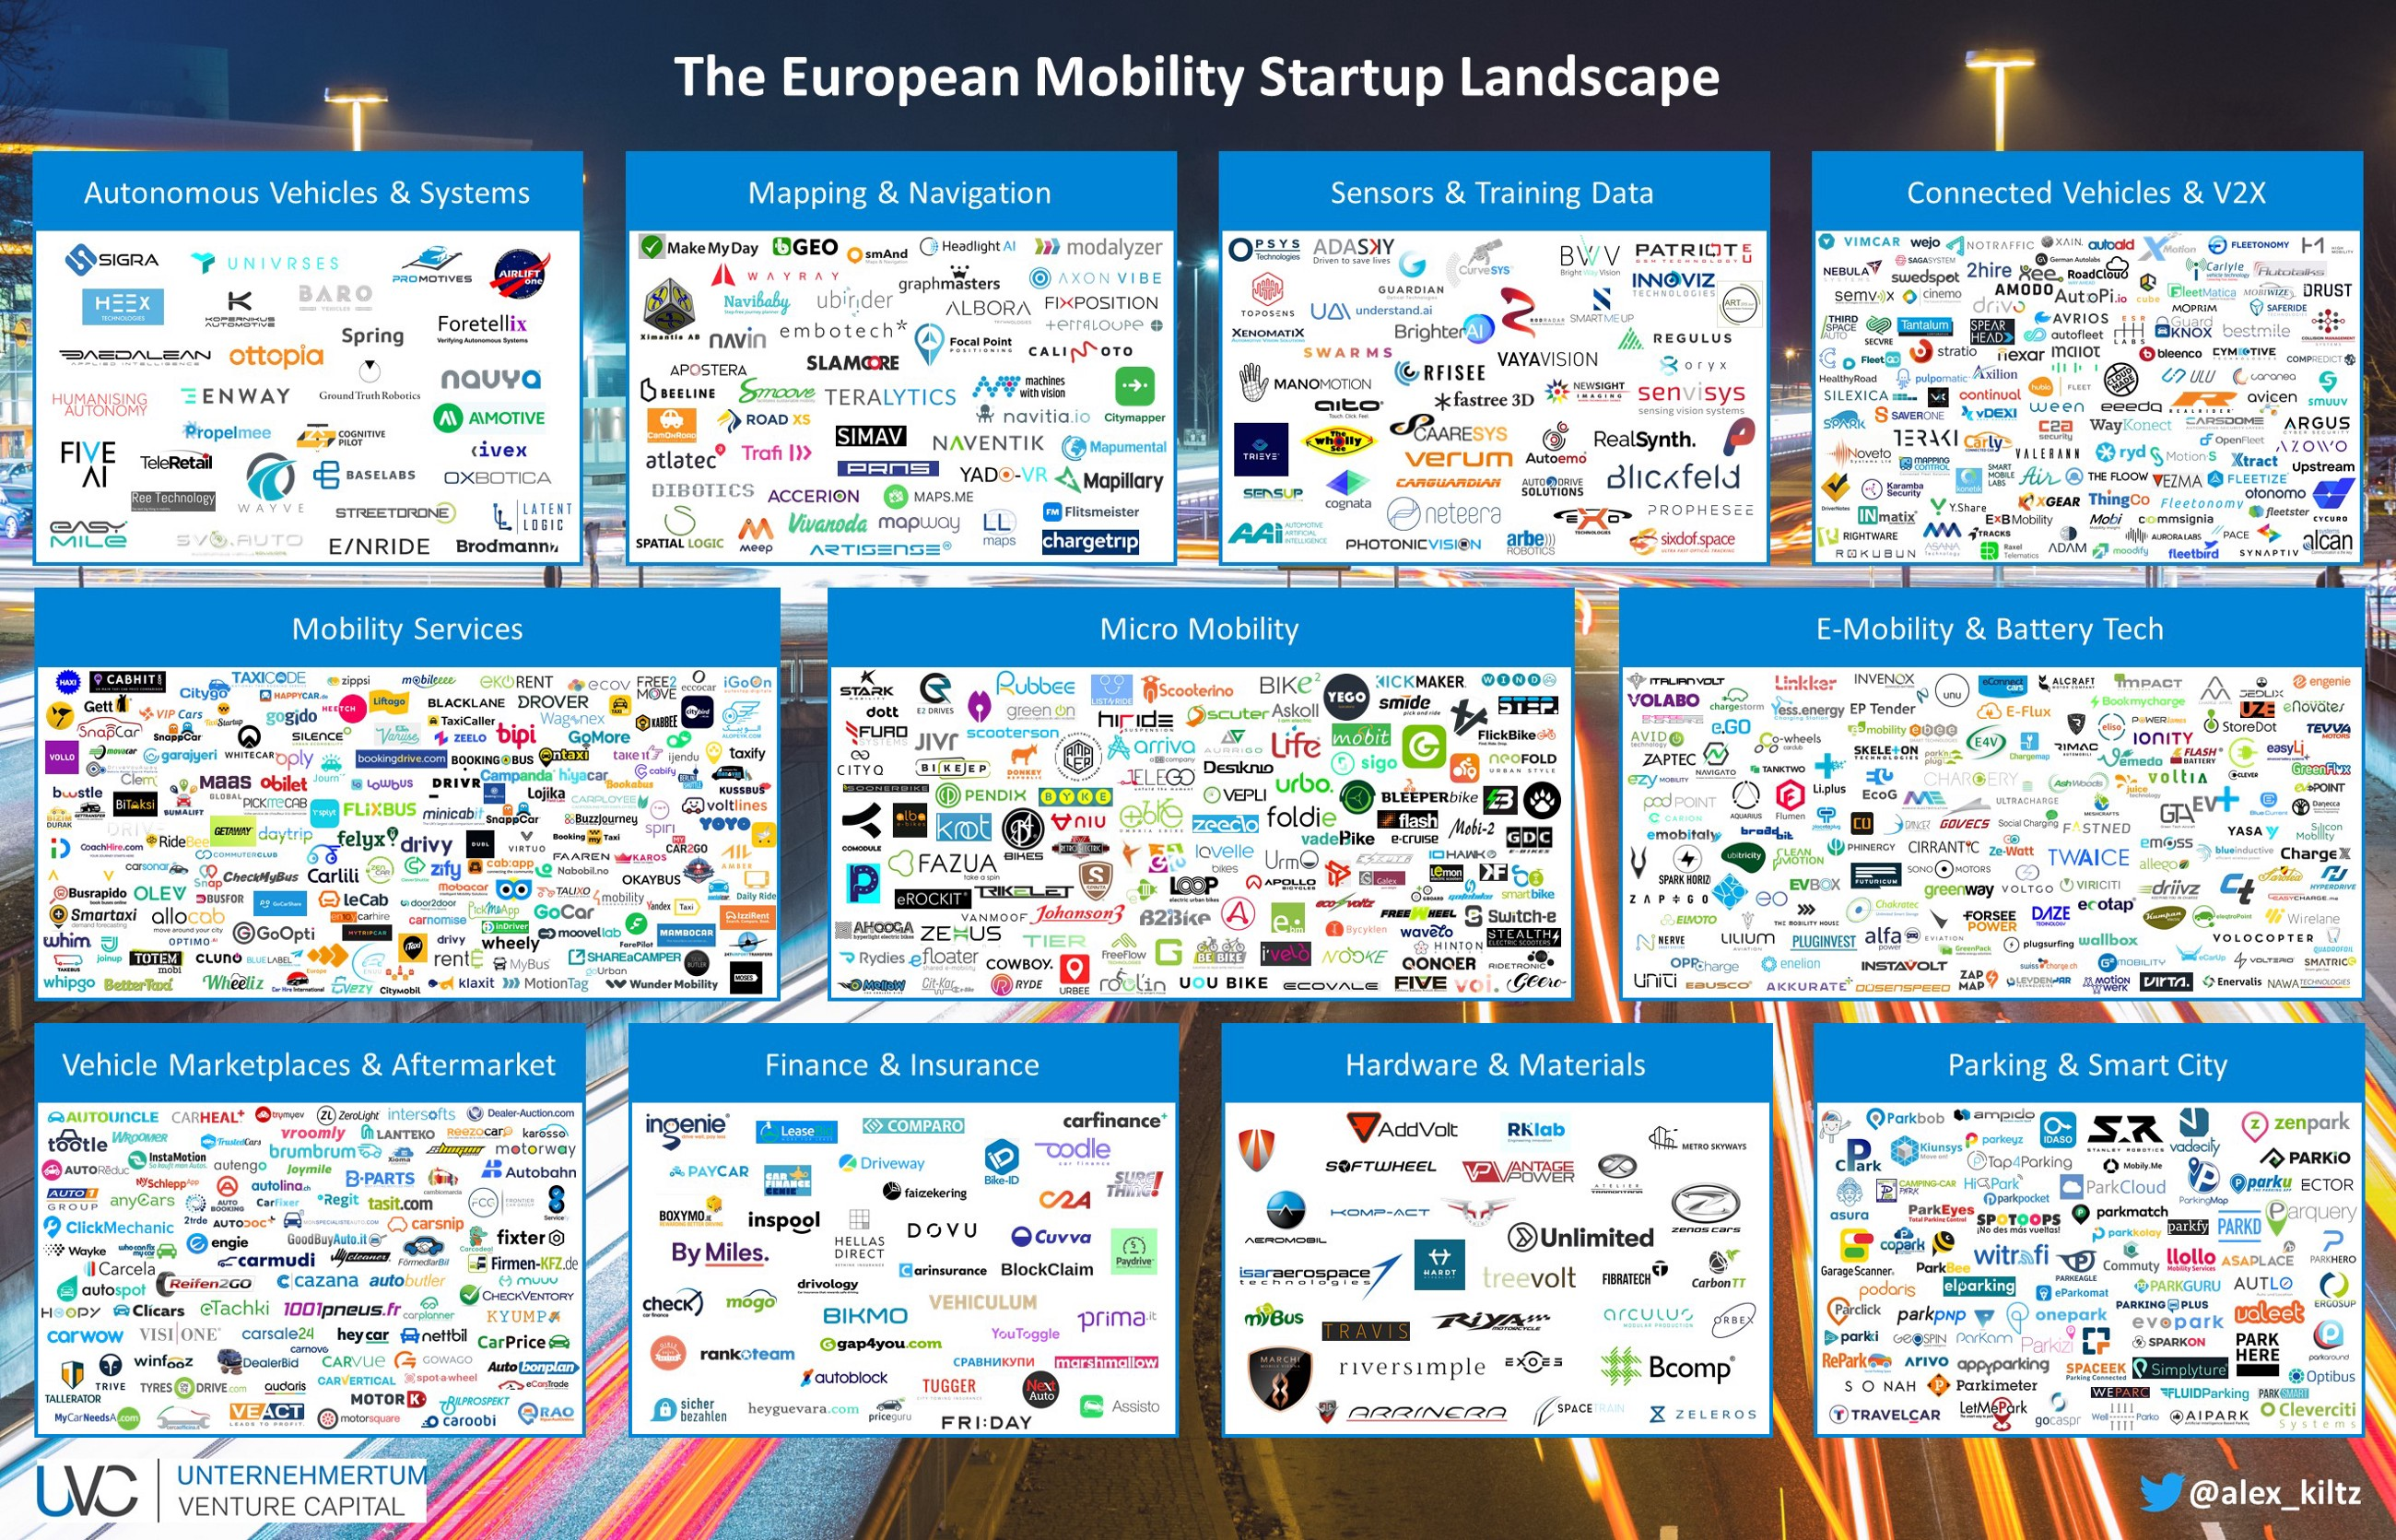 The European Mobility Startup Landscape – The Urban Mobility Blog